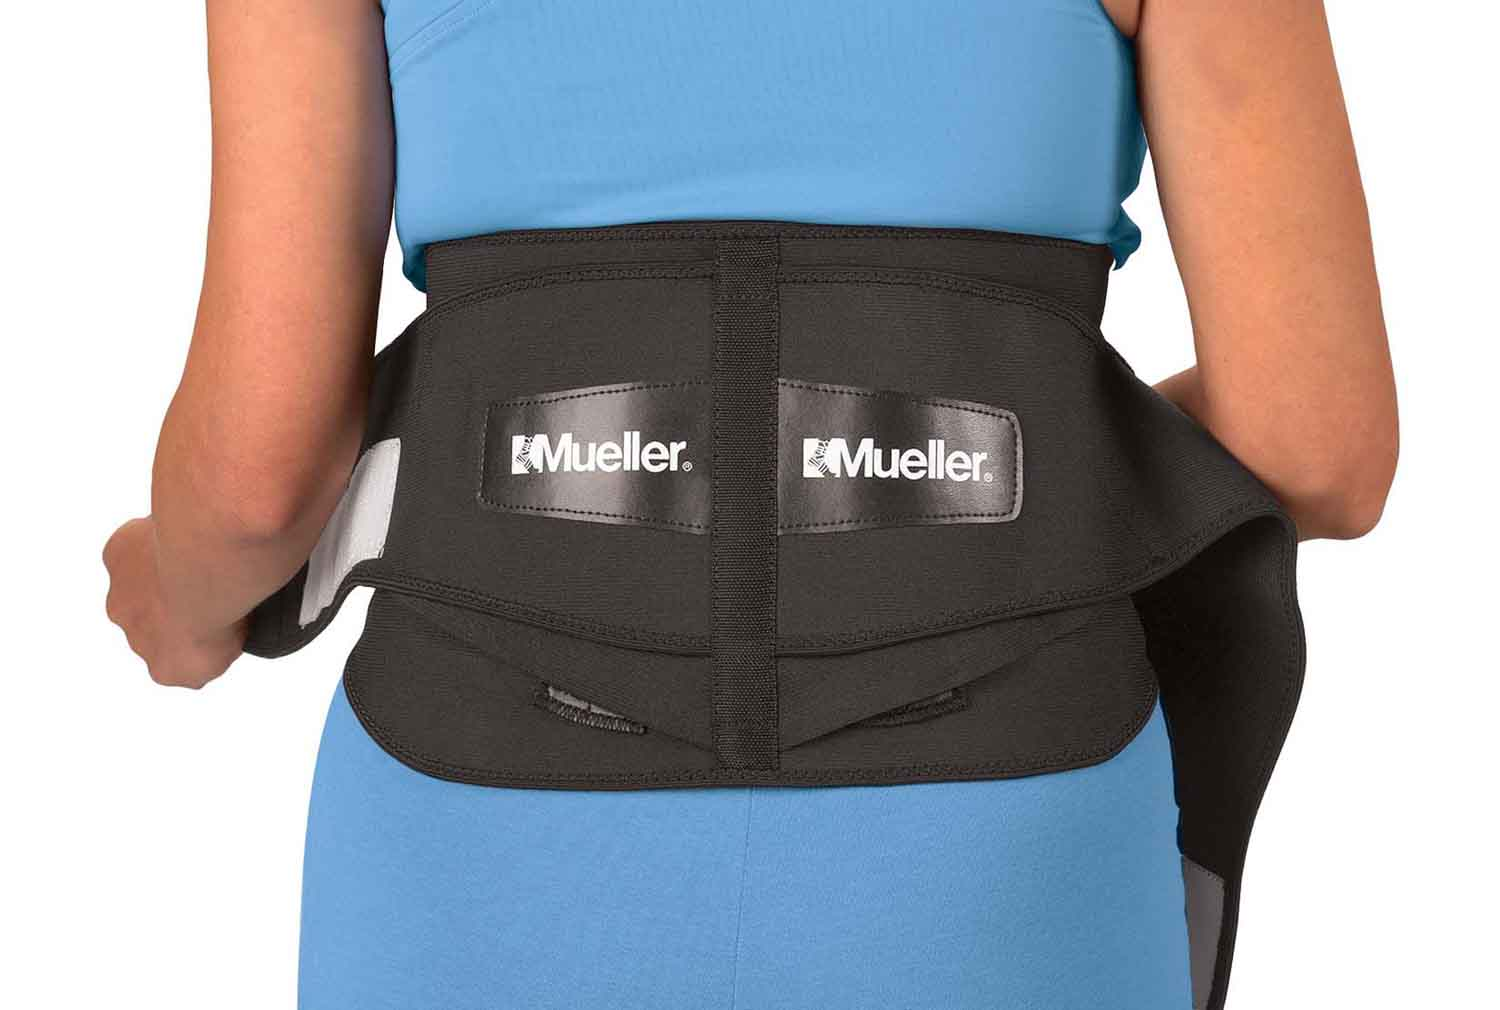 Mueller Lumbar Support Back Brace with Pad   eBay